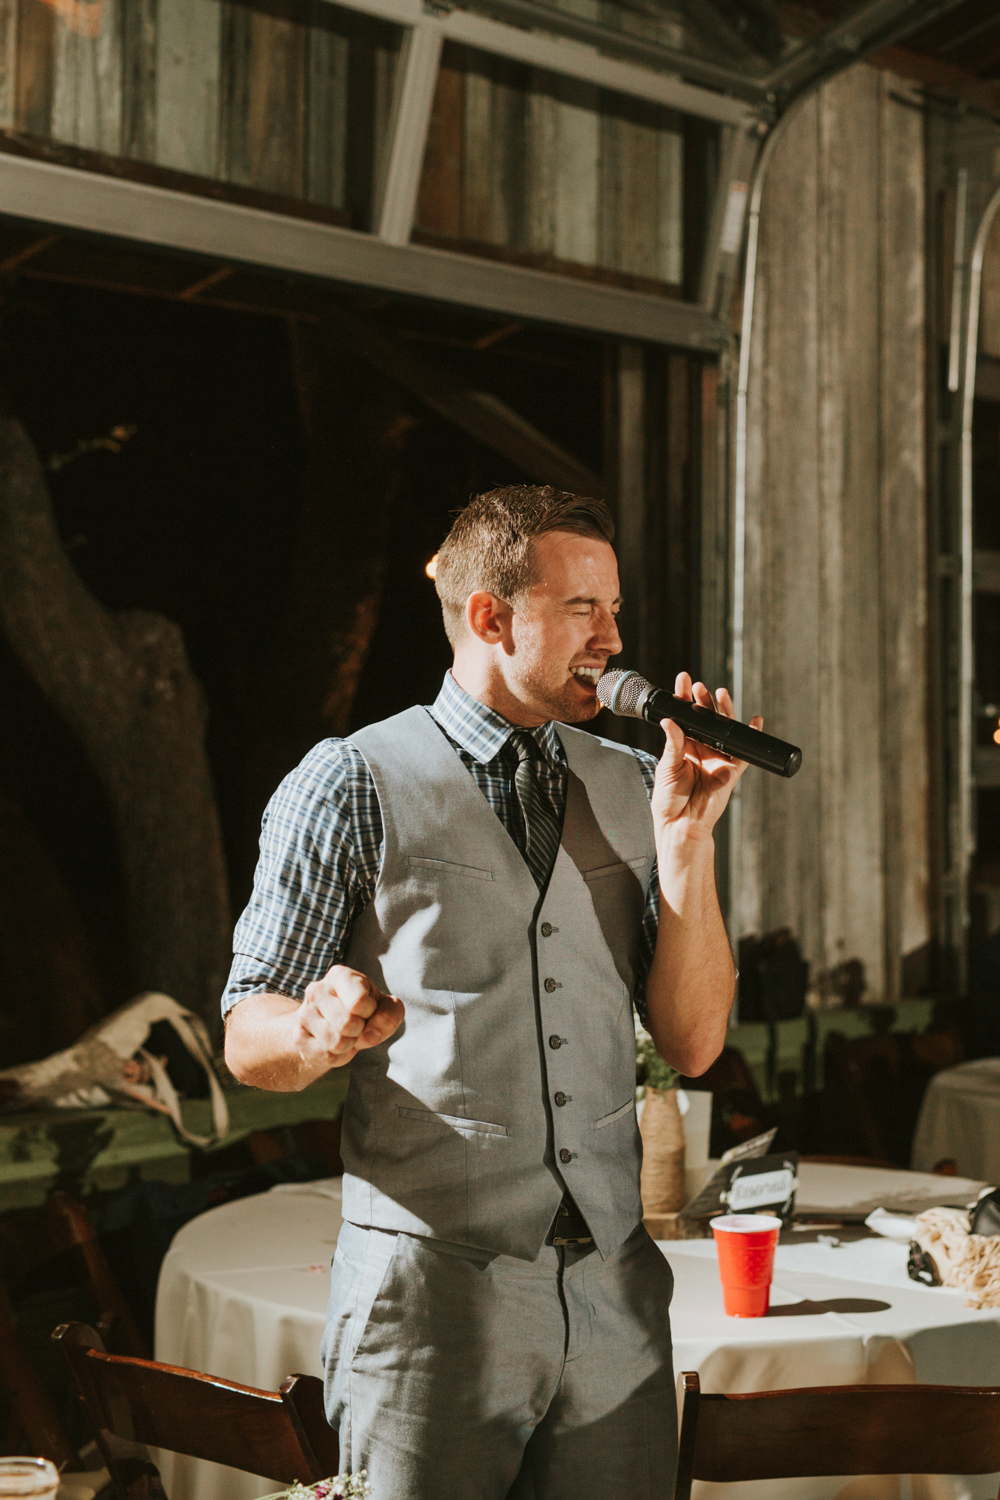 Rustic Ranch Wedding Photography - Diana Ascarrunz Photography - Austin Wedding Photographer-103.jpg